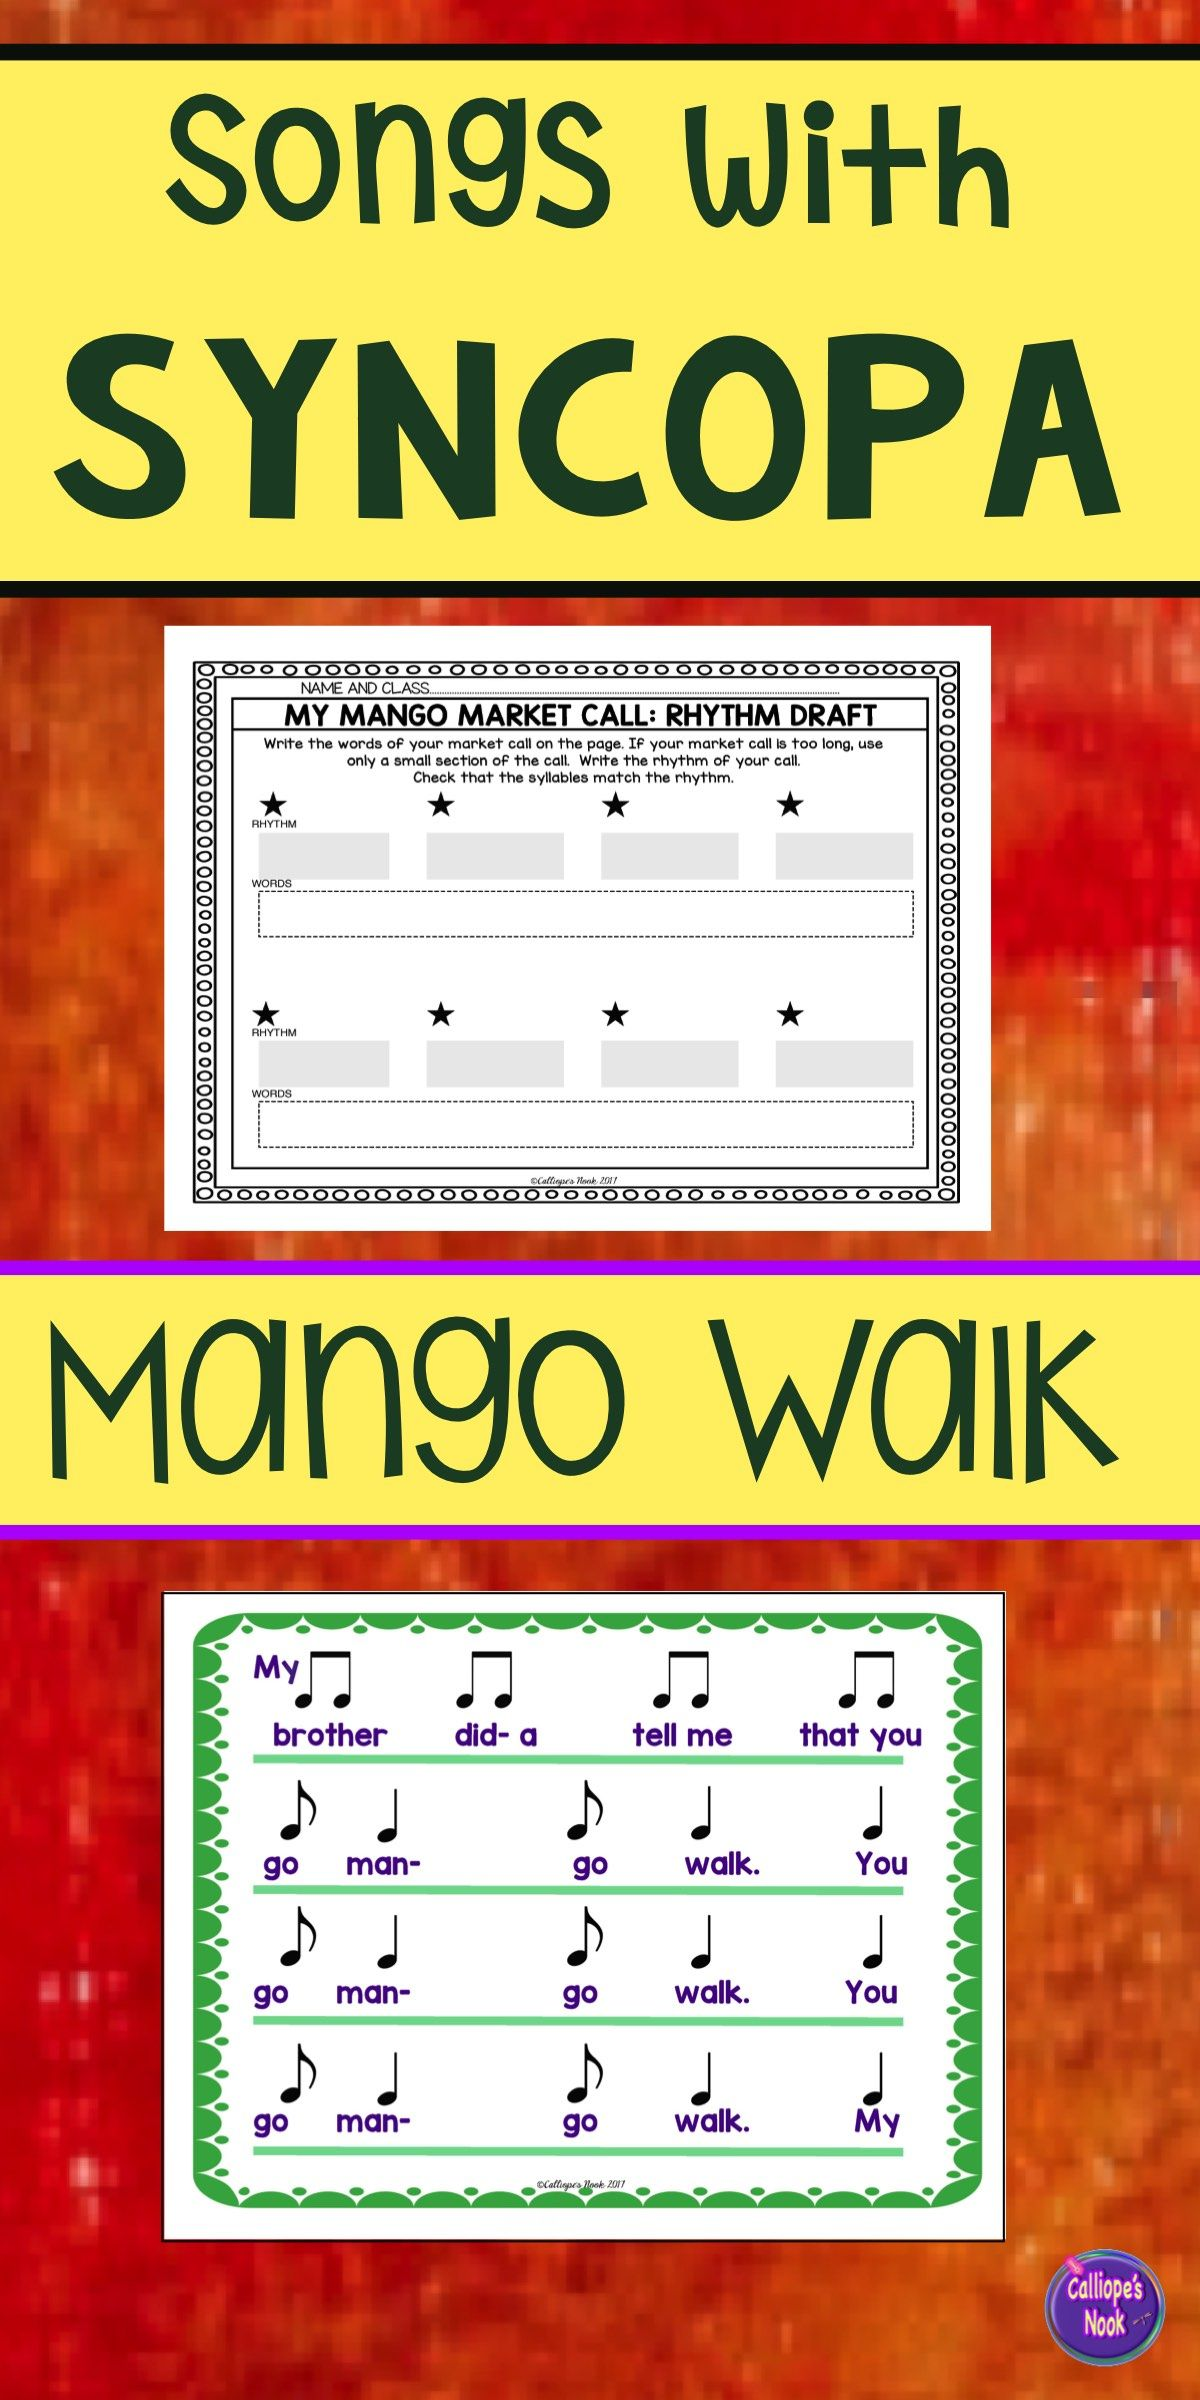 Syncopation Song Syncopa With Mango Walk And Composition